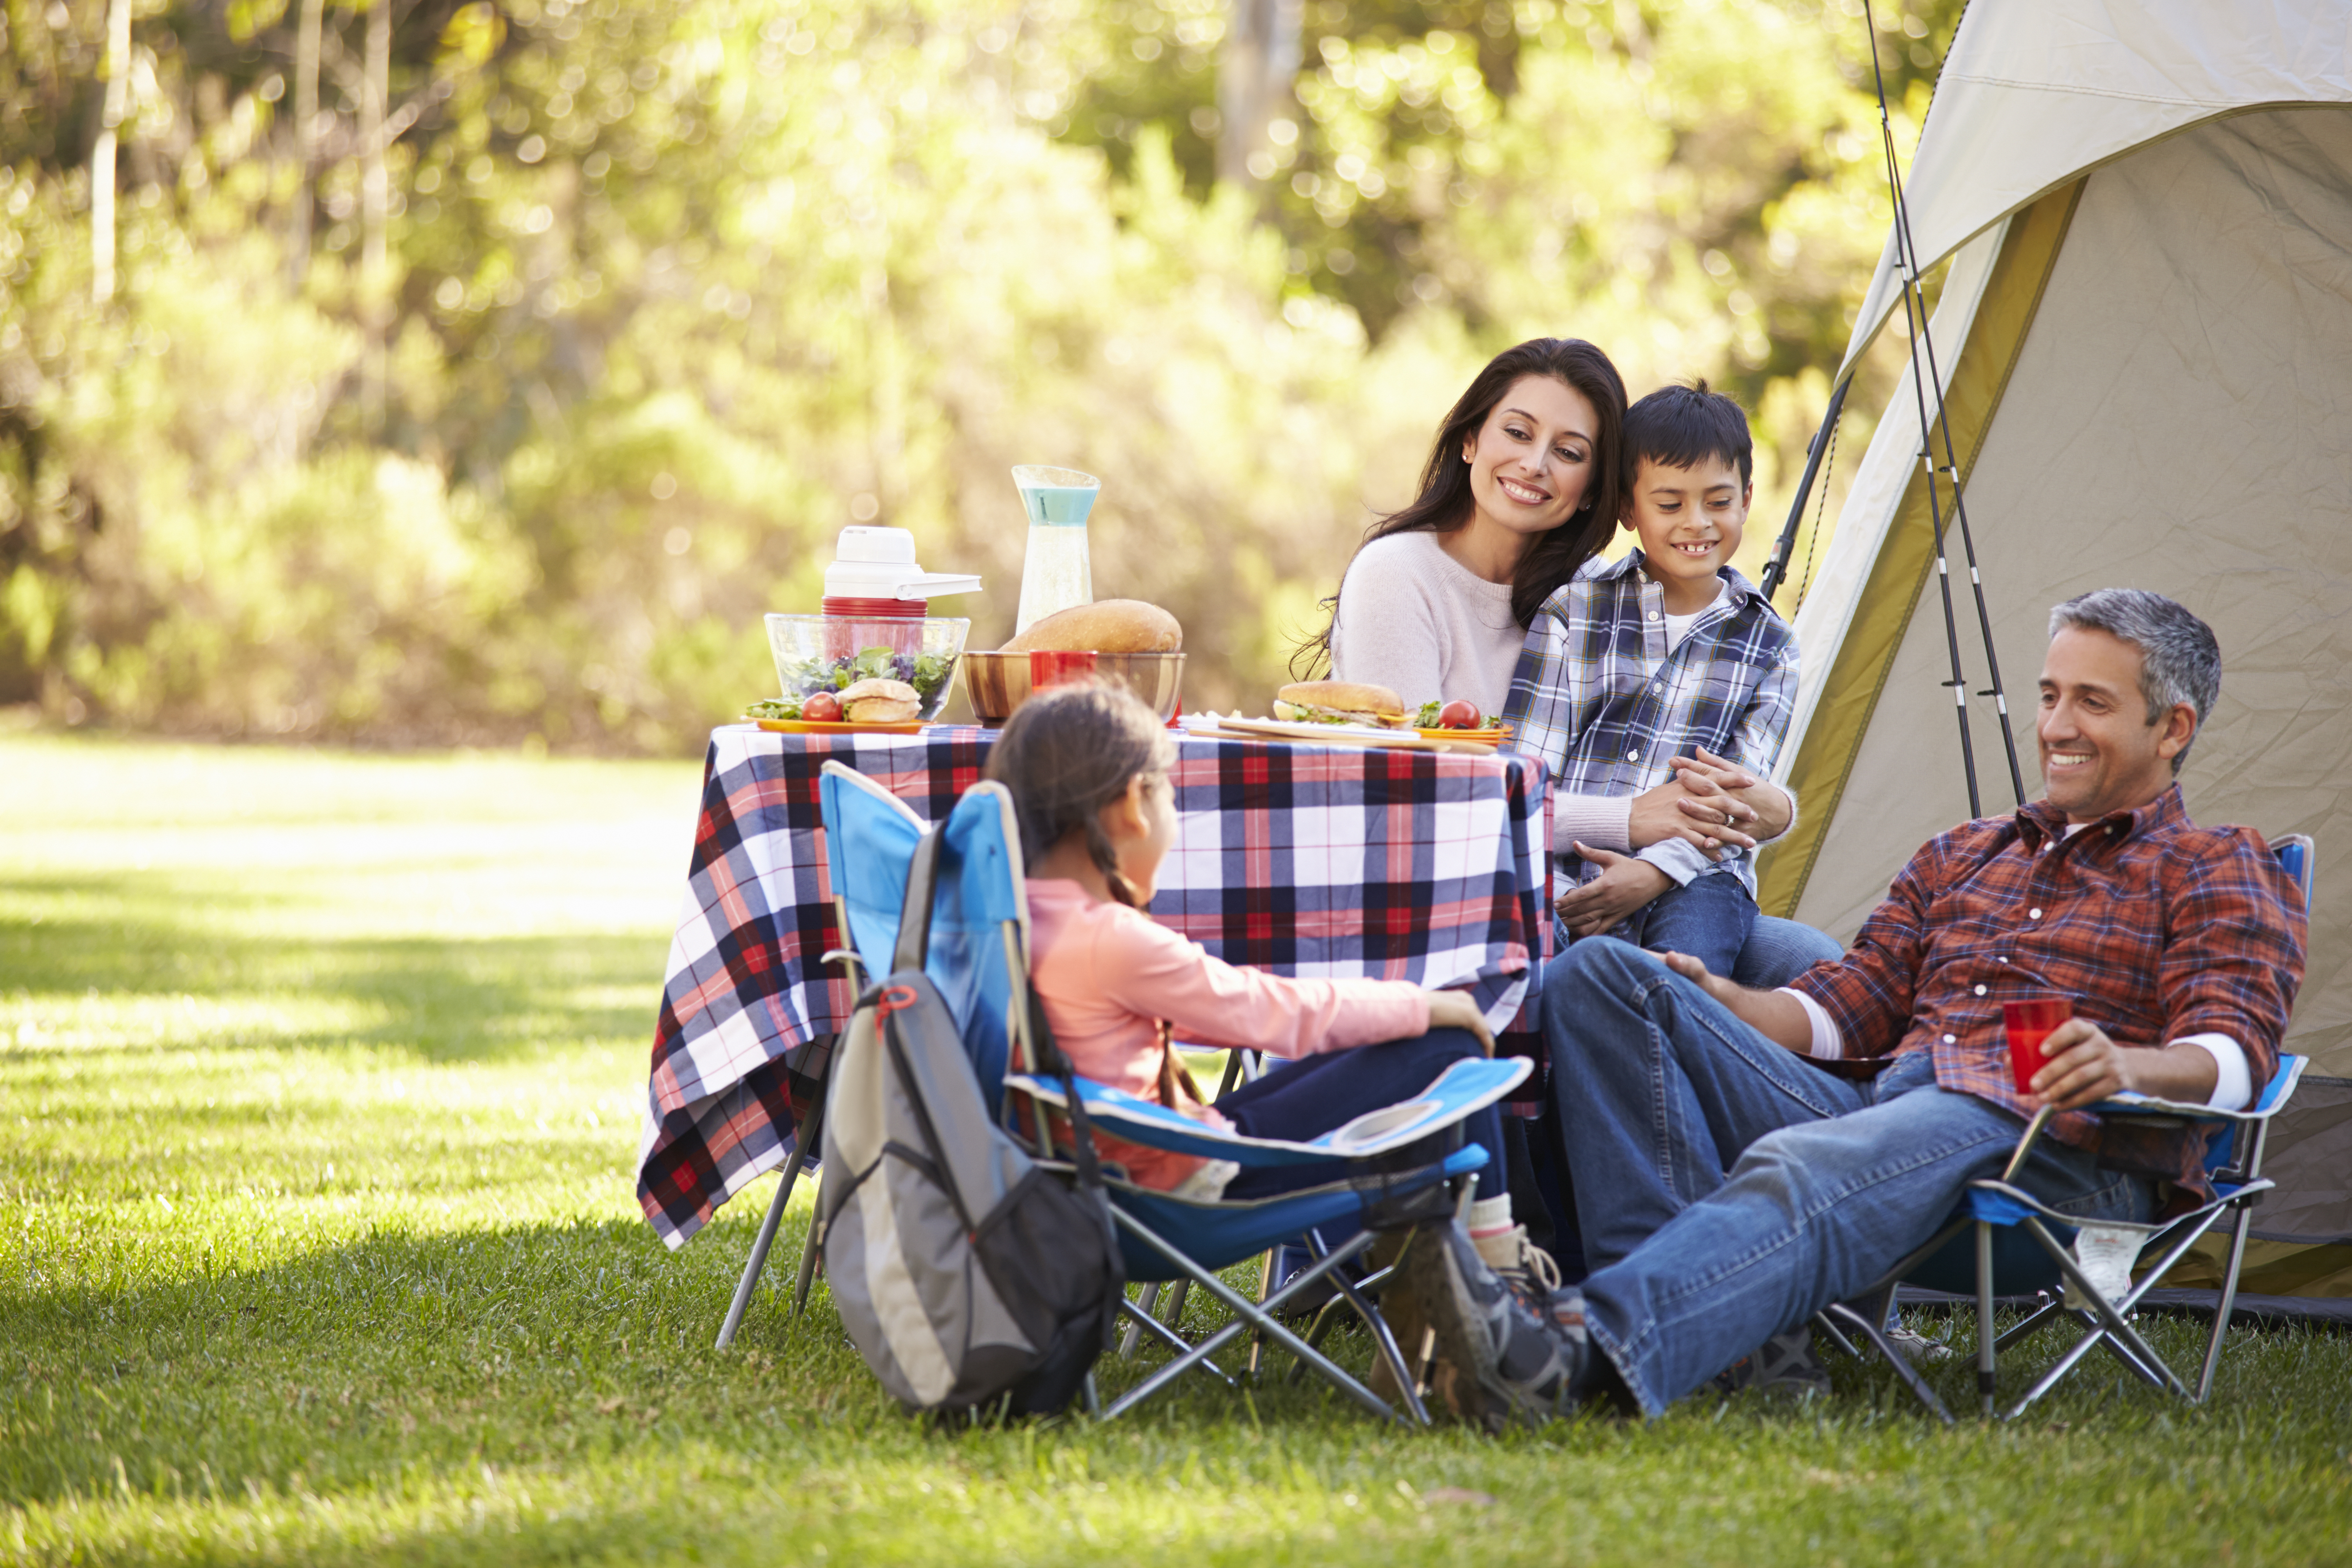 priority health personal wellness camping in michigan family outside tent